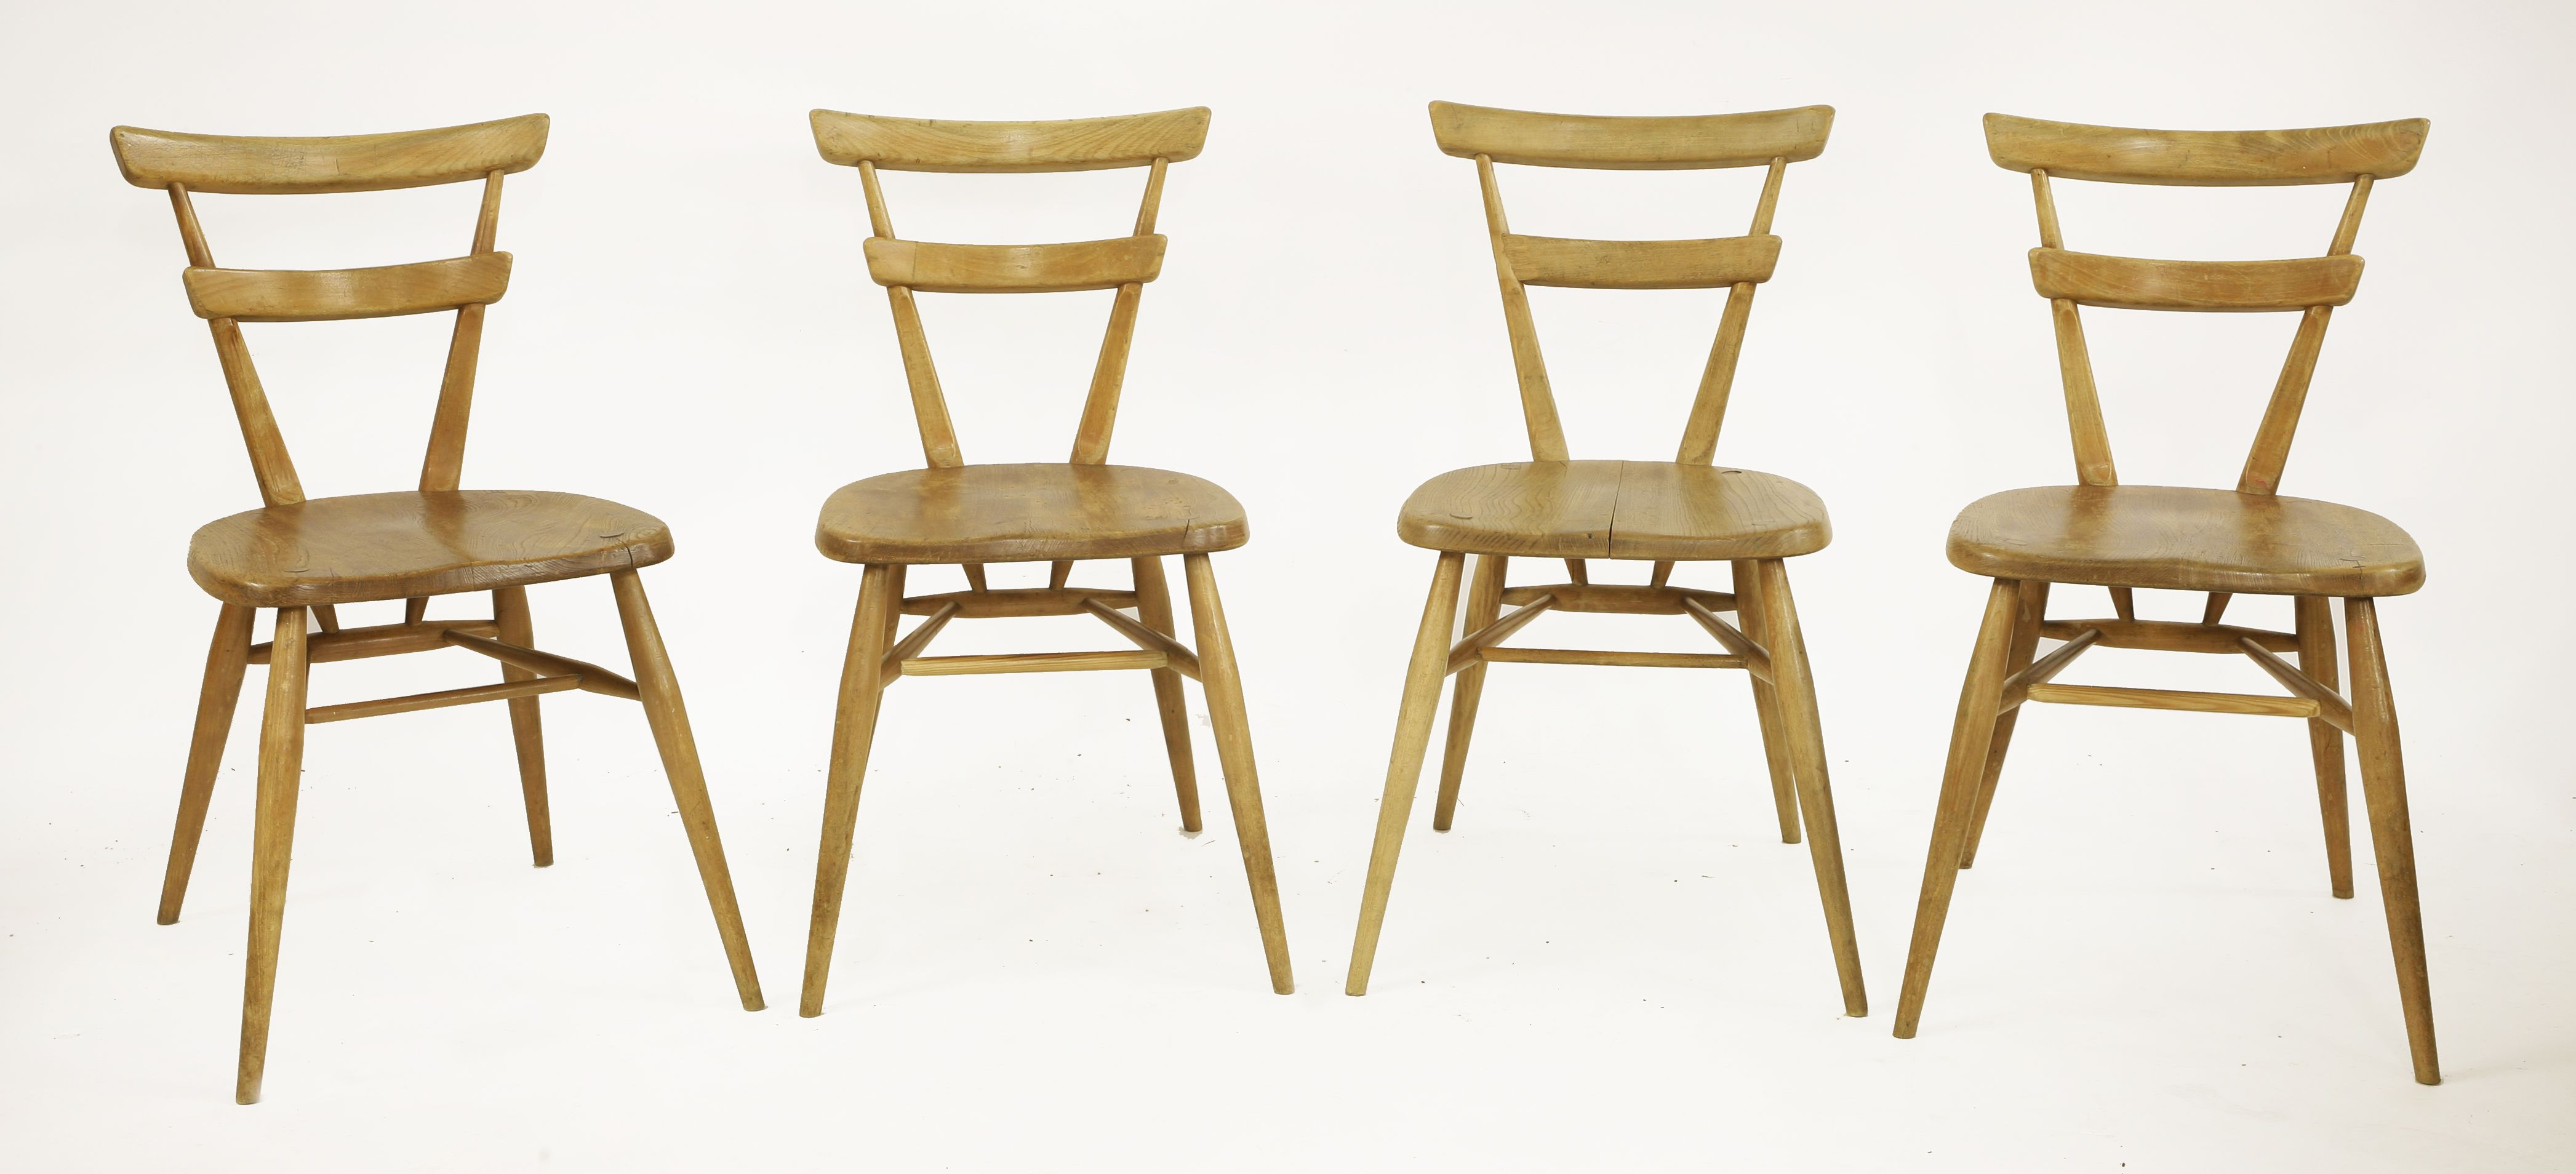 Four Ercol stacking chairs, green dot, Sold for £300 on